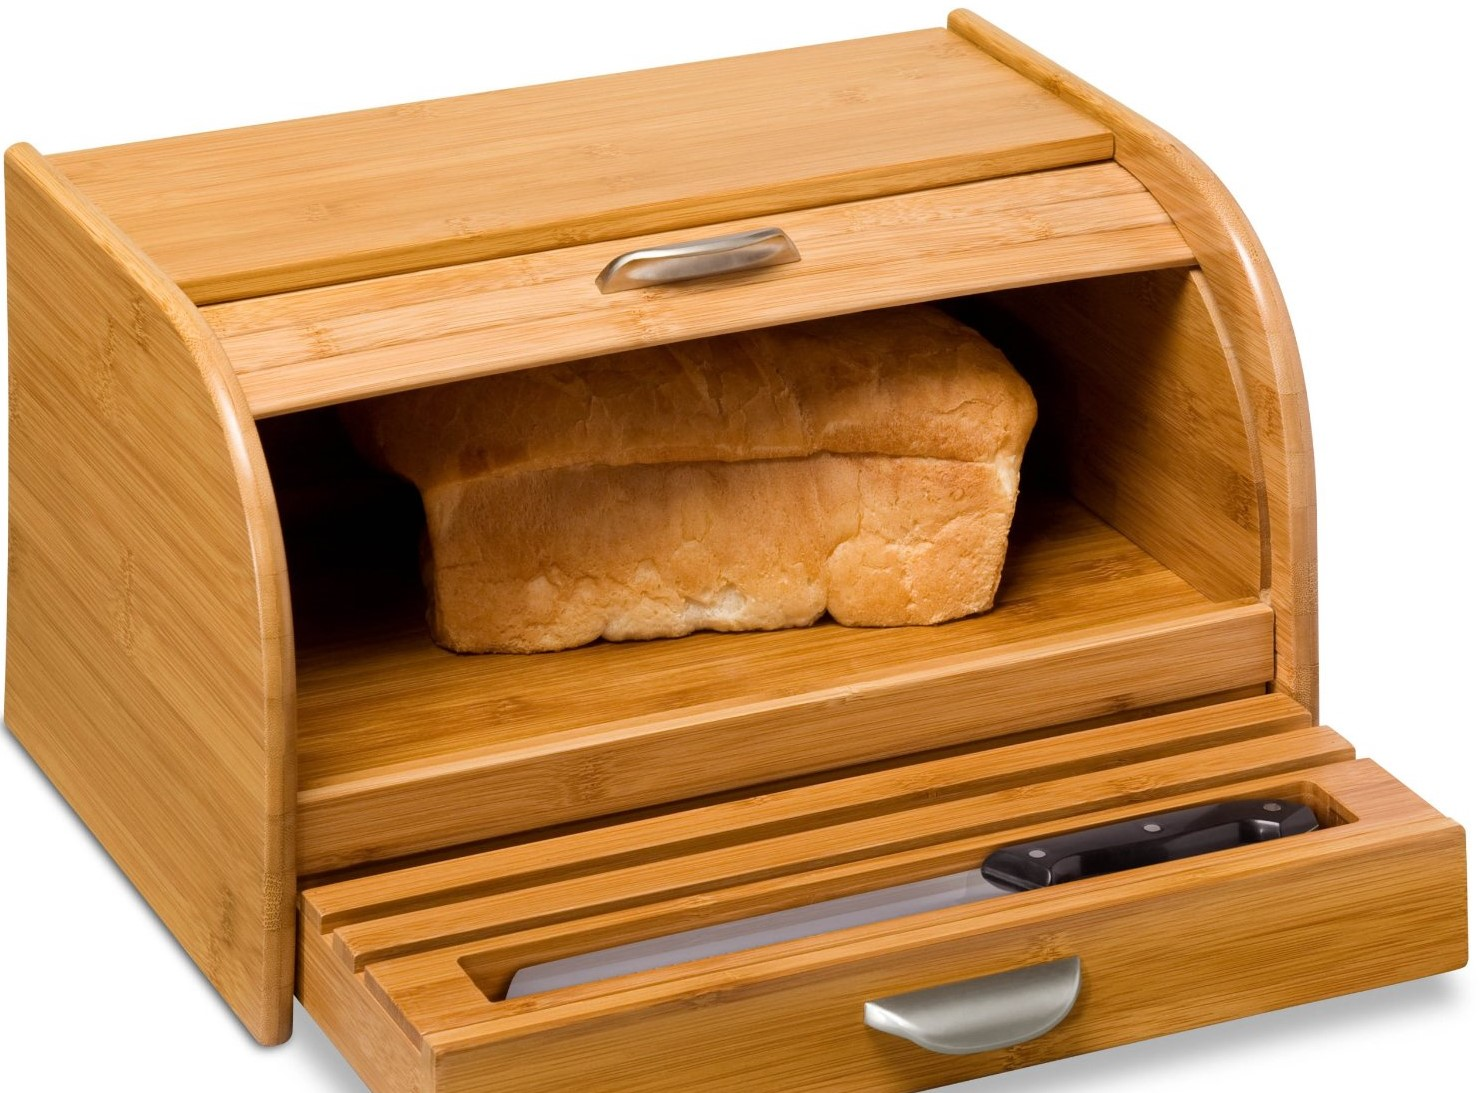 This breadbox comes with a built-in cutting board on the bottom that pulls out like a drawer. Made from bamboo veneer, it also includes a utensil caddy.